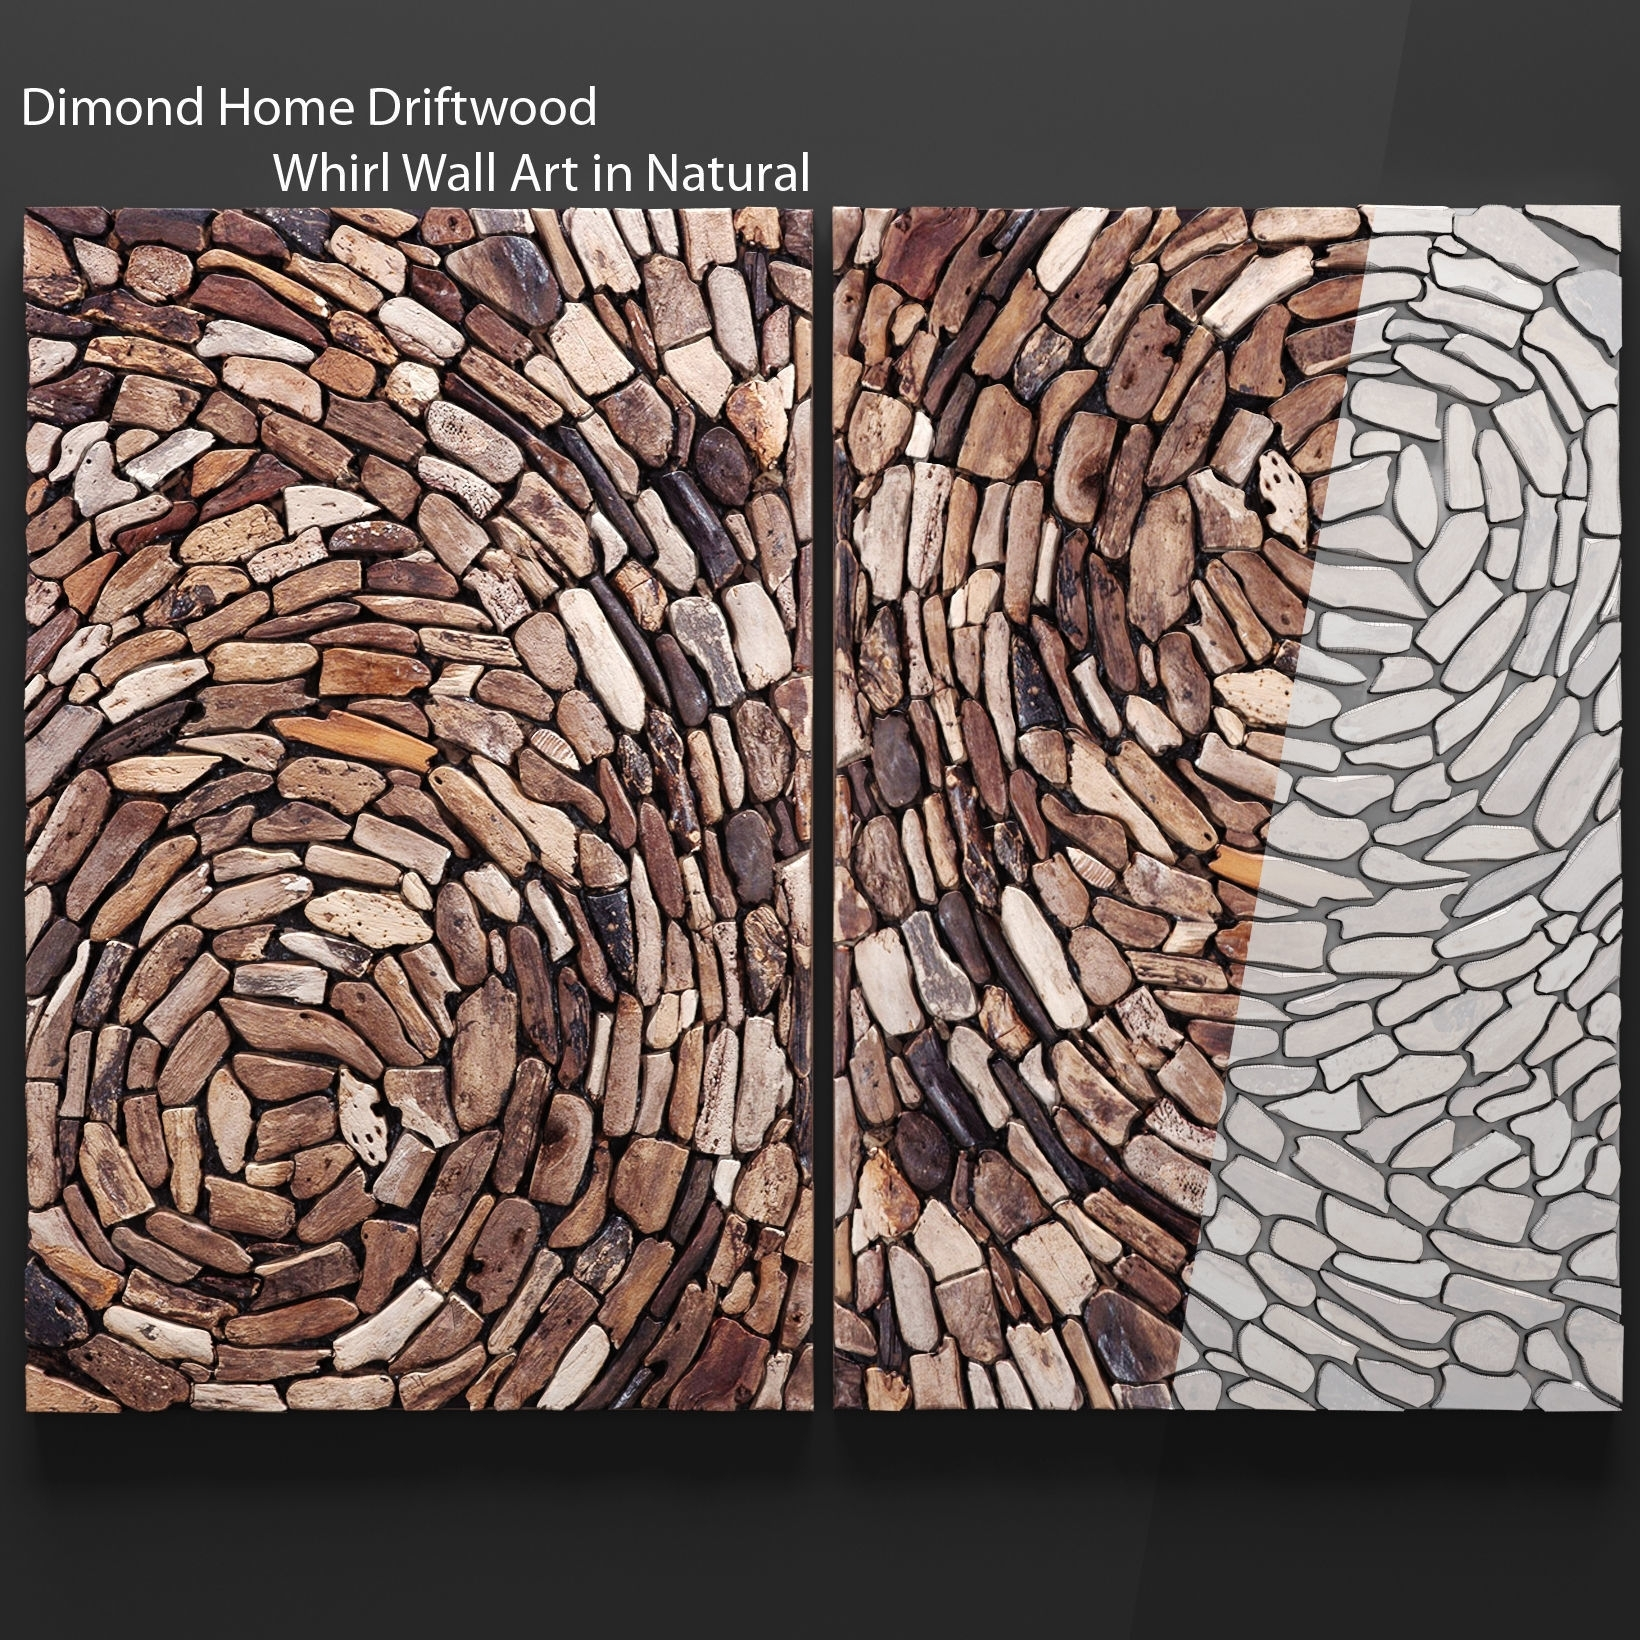 Dimond Home Driftwood Whirl Wall Art In Natural 3D Model Max Obj Fbx inside Driftwood Wall Art (Image 5 of 20)